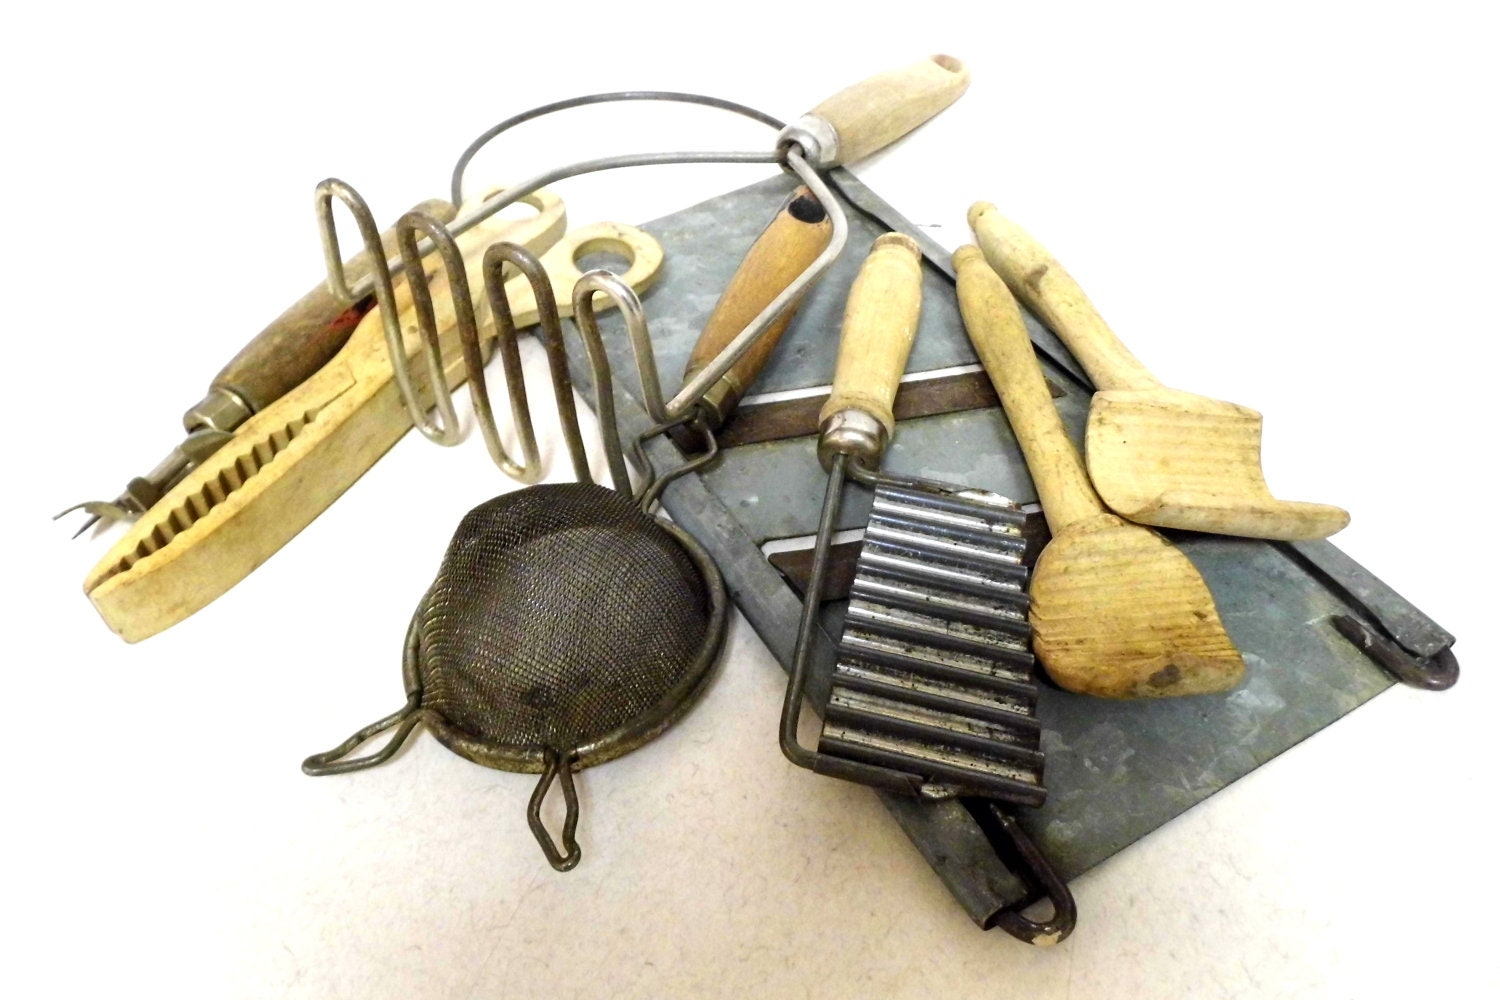 Vintage Kitchen Utensils, Primitive Kitchen, Rustic Kitchen, Country ...